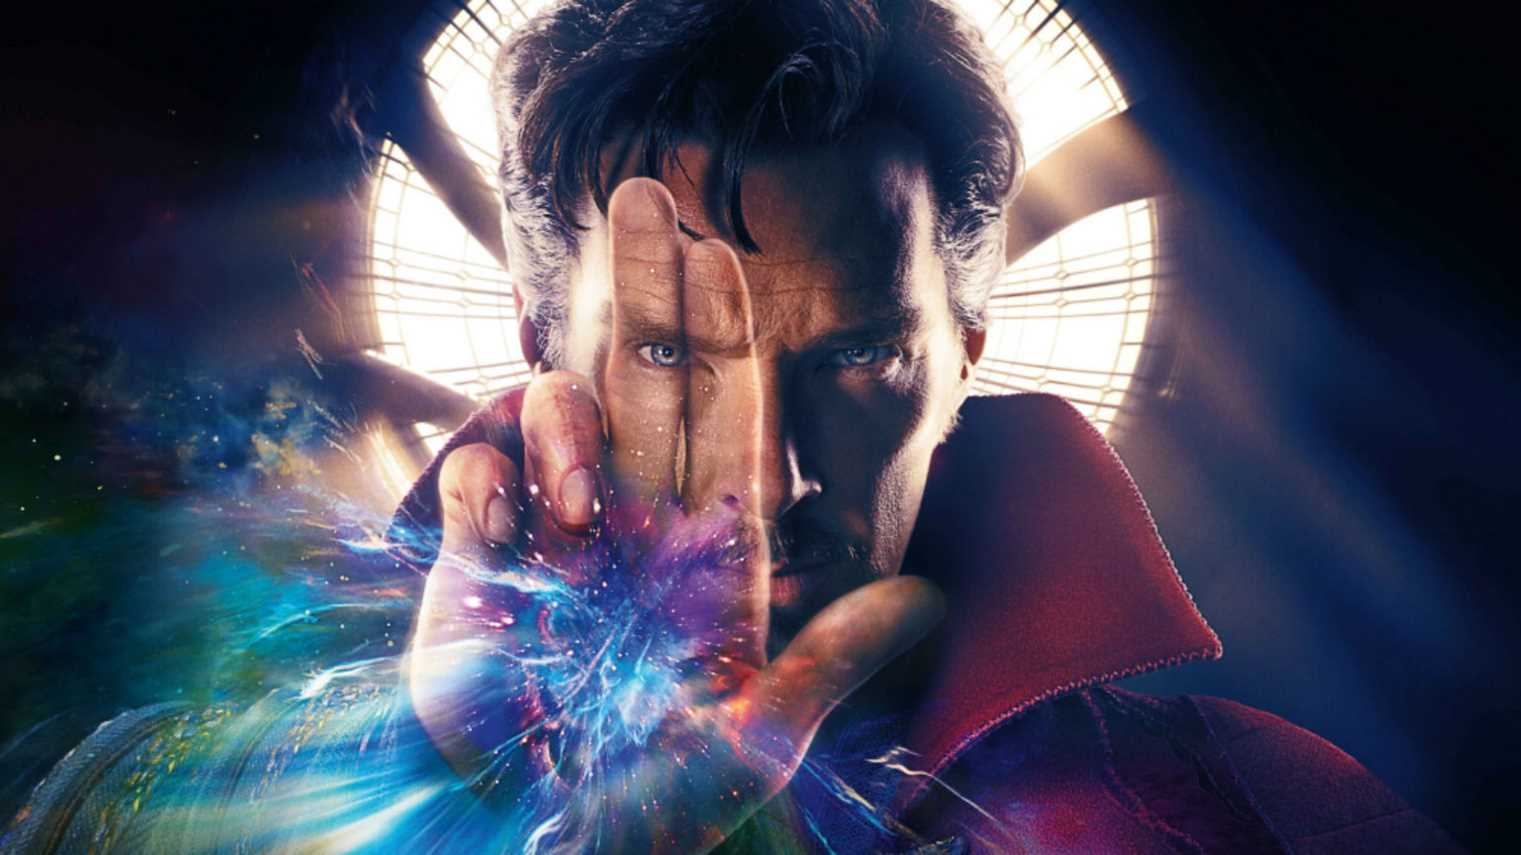 What happens when you add a phenomenal weapon to the Marvel Cinematic Universe? In this special guest post, Den of Geek's editor Simon Brew tells us how the magic of Doctor Strange is going to have an impact on all Marvel films to come.